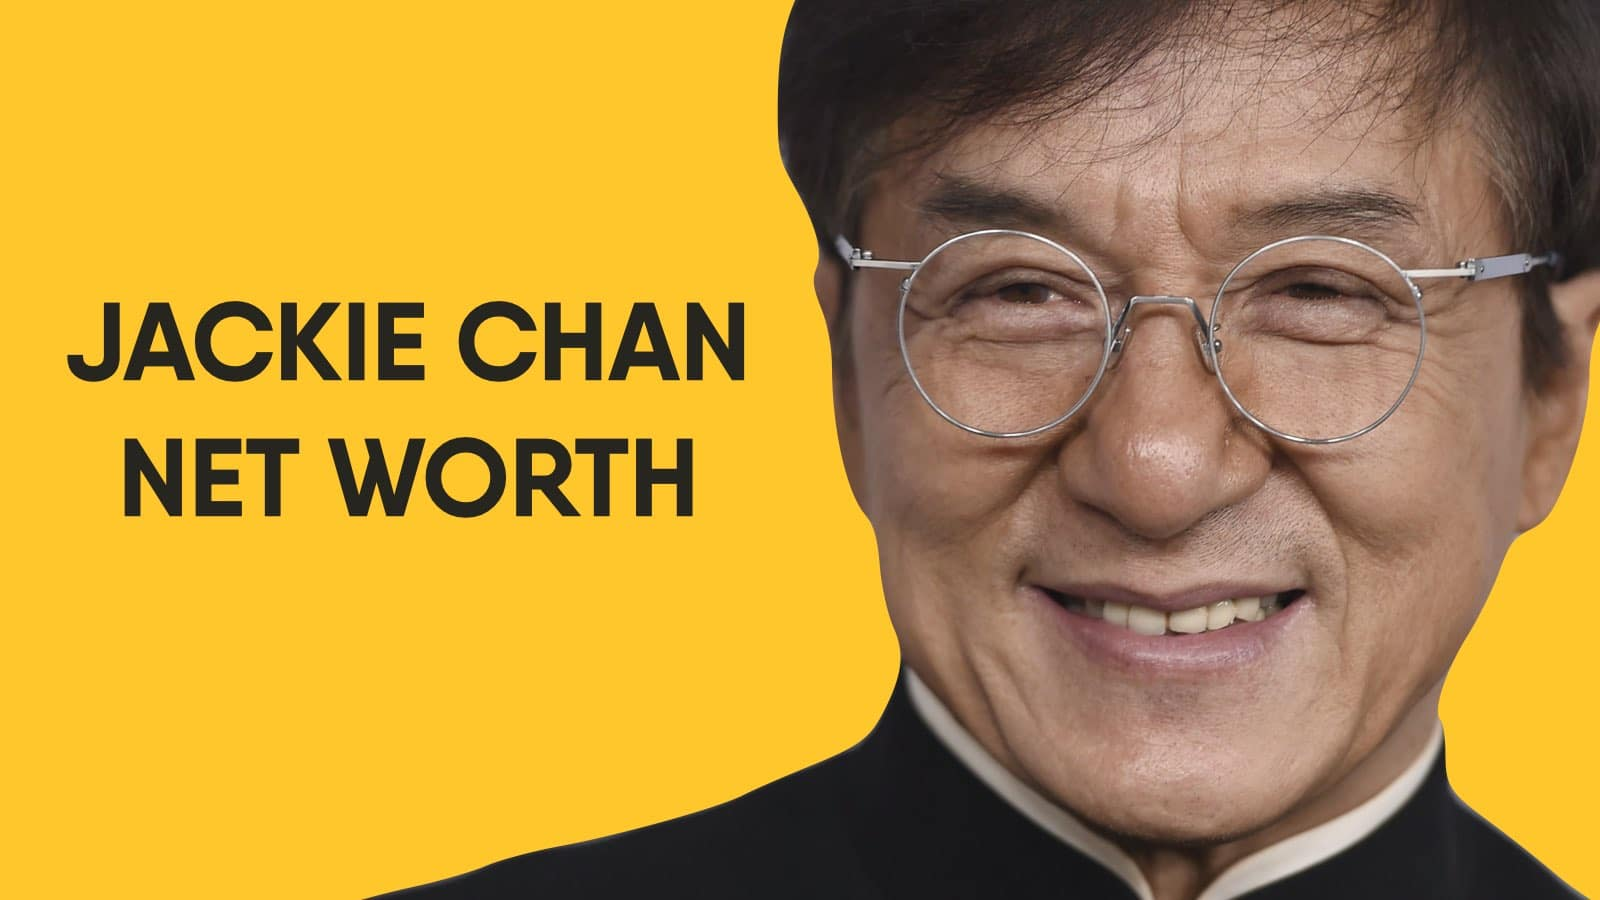 Jackie Chan Net Worth And Earnings In 2020